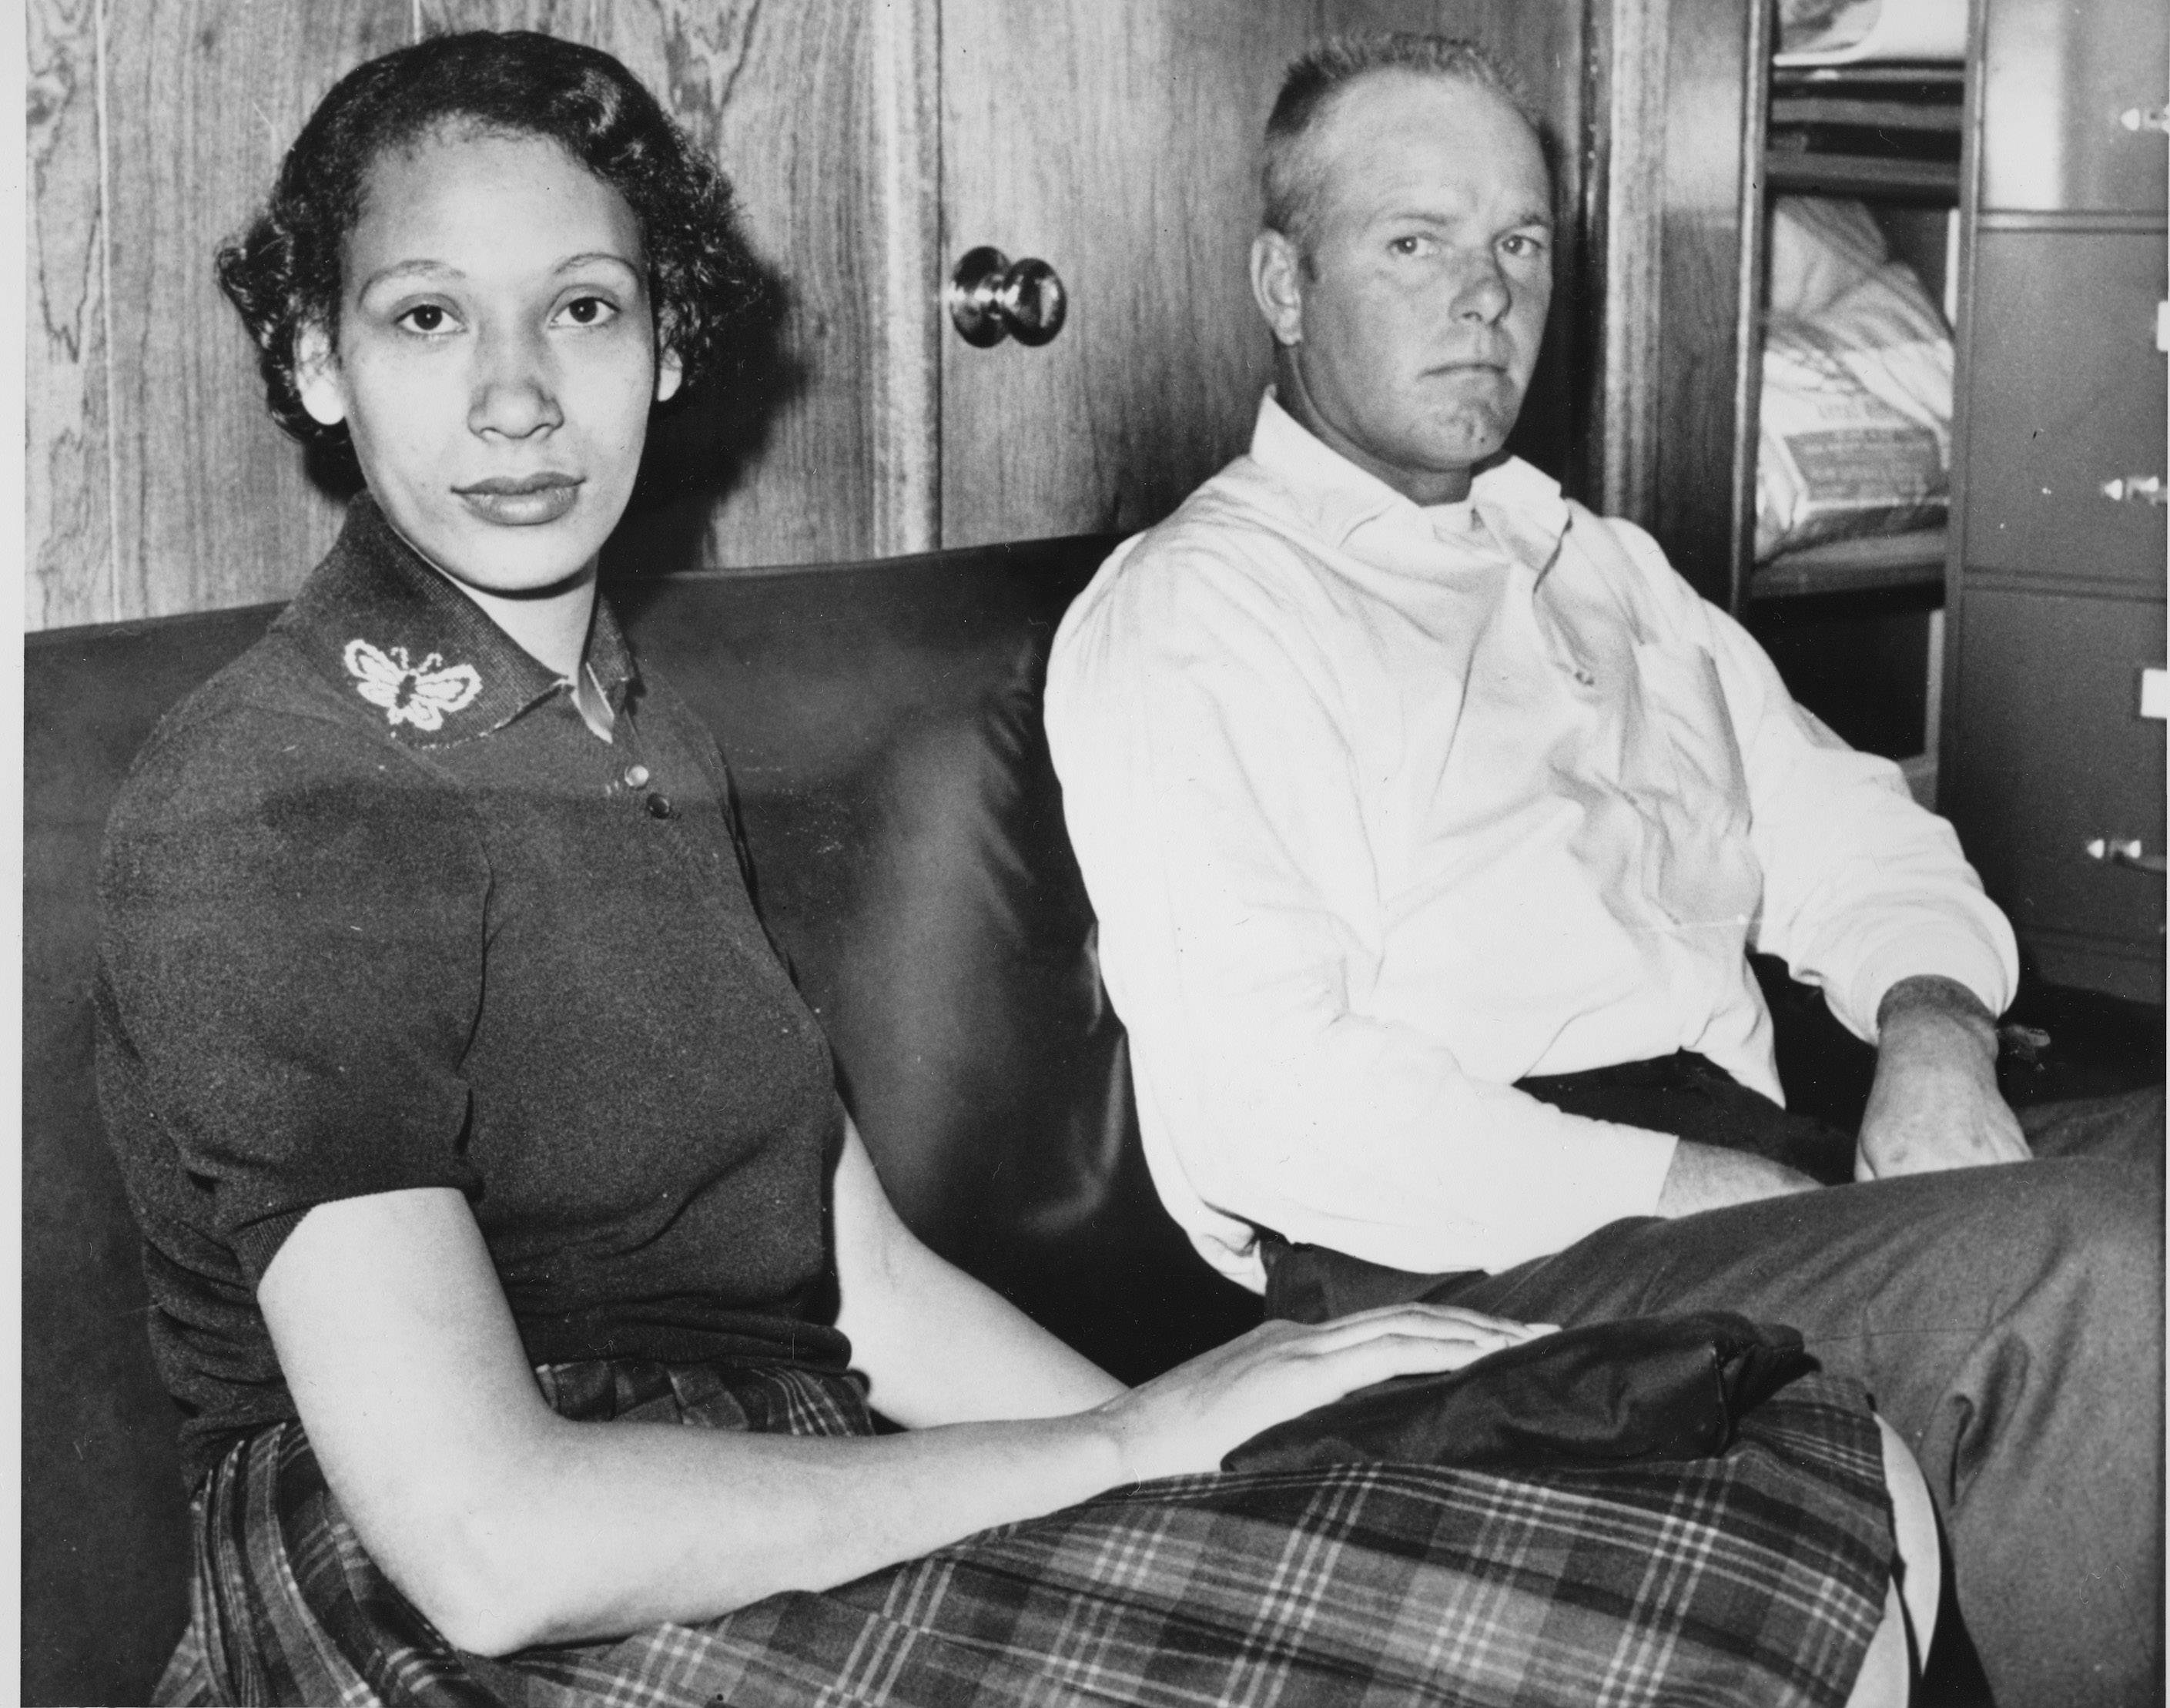 ASSOCIATED PRESS In 1958, Mildred and Richard Loving married in Washington. After they returned to Virginia, police raided their home and arrested them. They avoided jail time by agreeing to leave Virginia — the only home they had known — for 25 years. The couple is seen in this file photo from 1965.